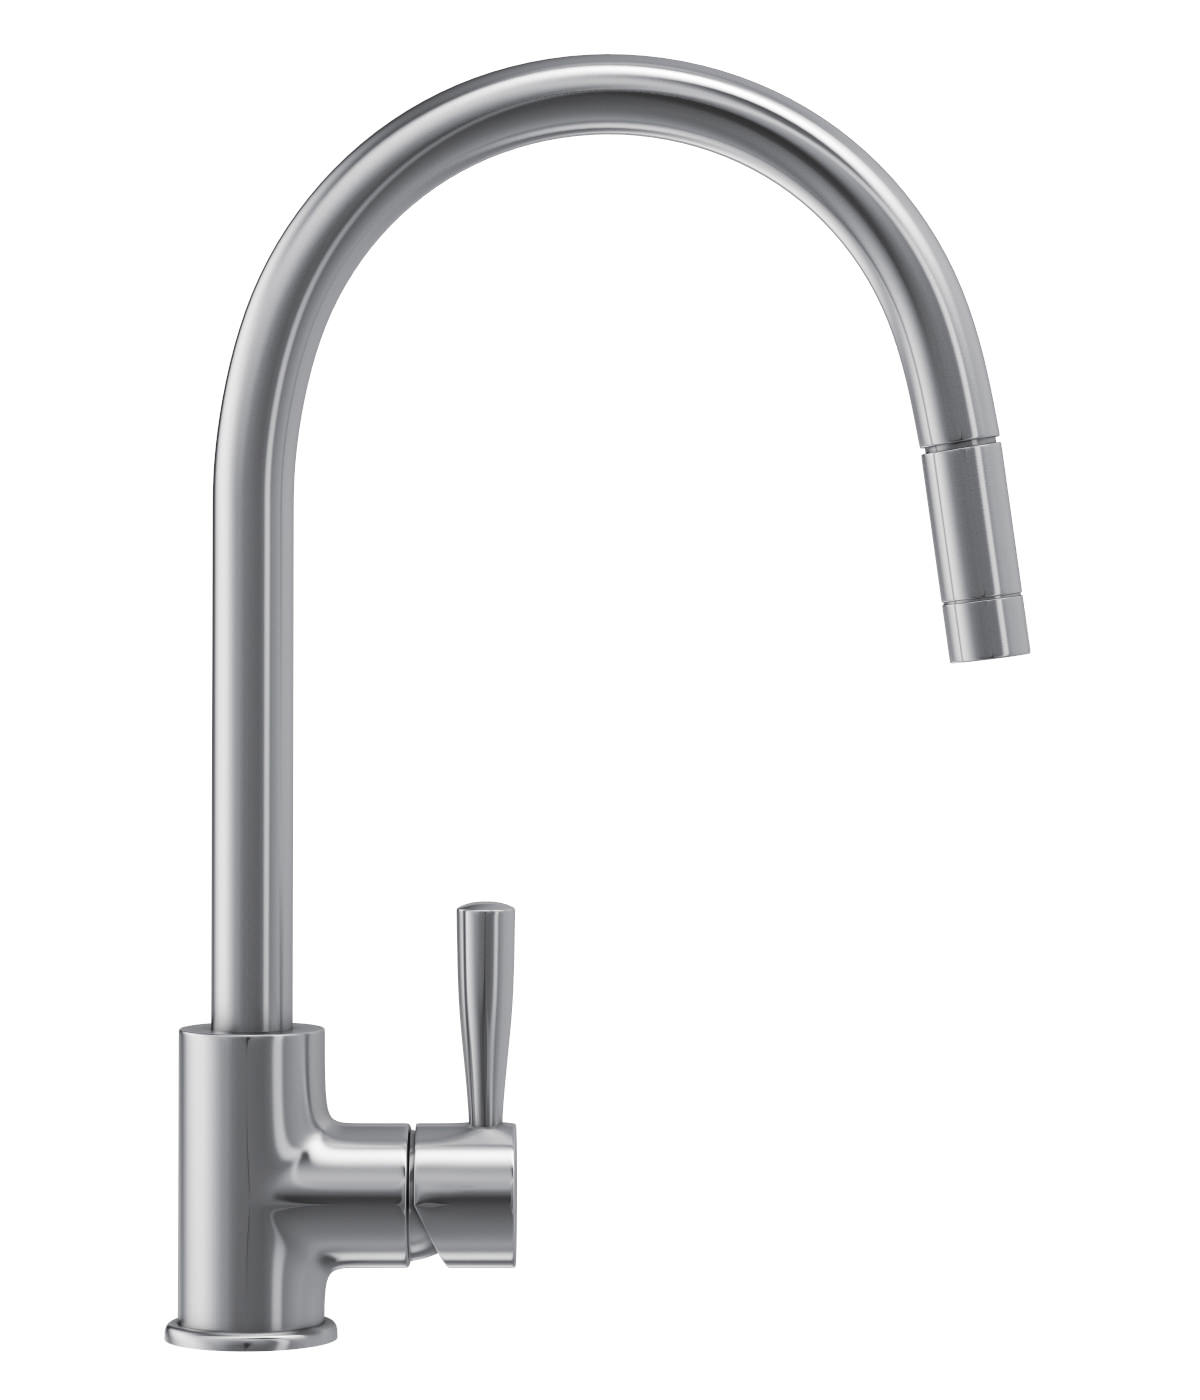 Franke Sink Mixer Taps : taps kitchen mixer taps franke fuji pull out nozzle kitchen sink mixer ...